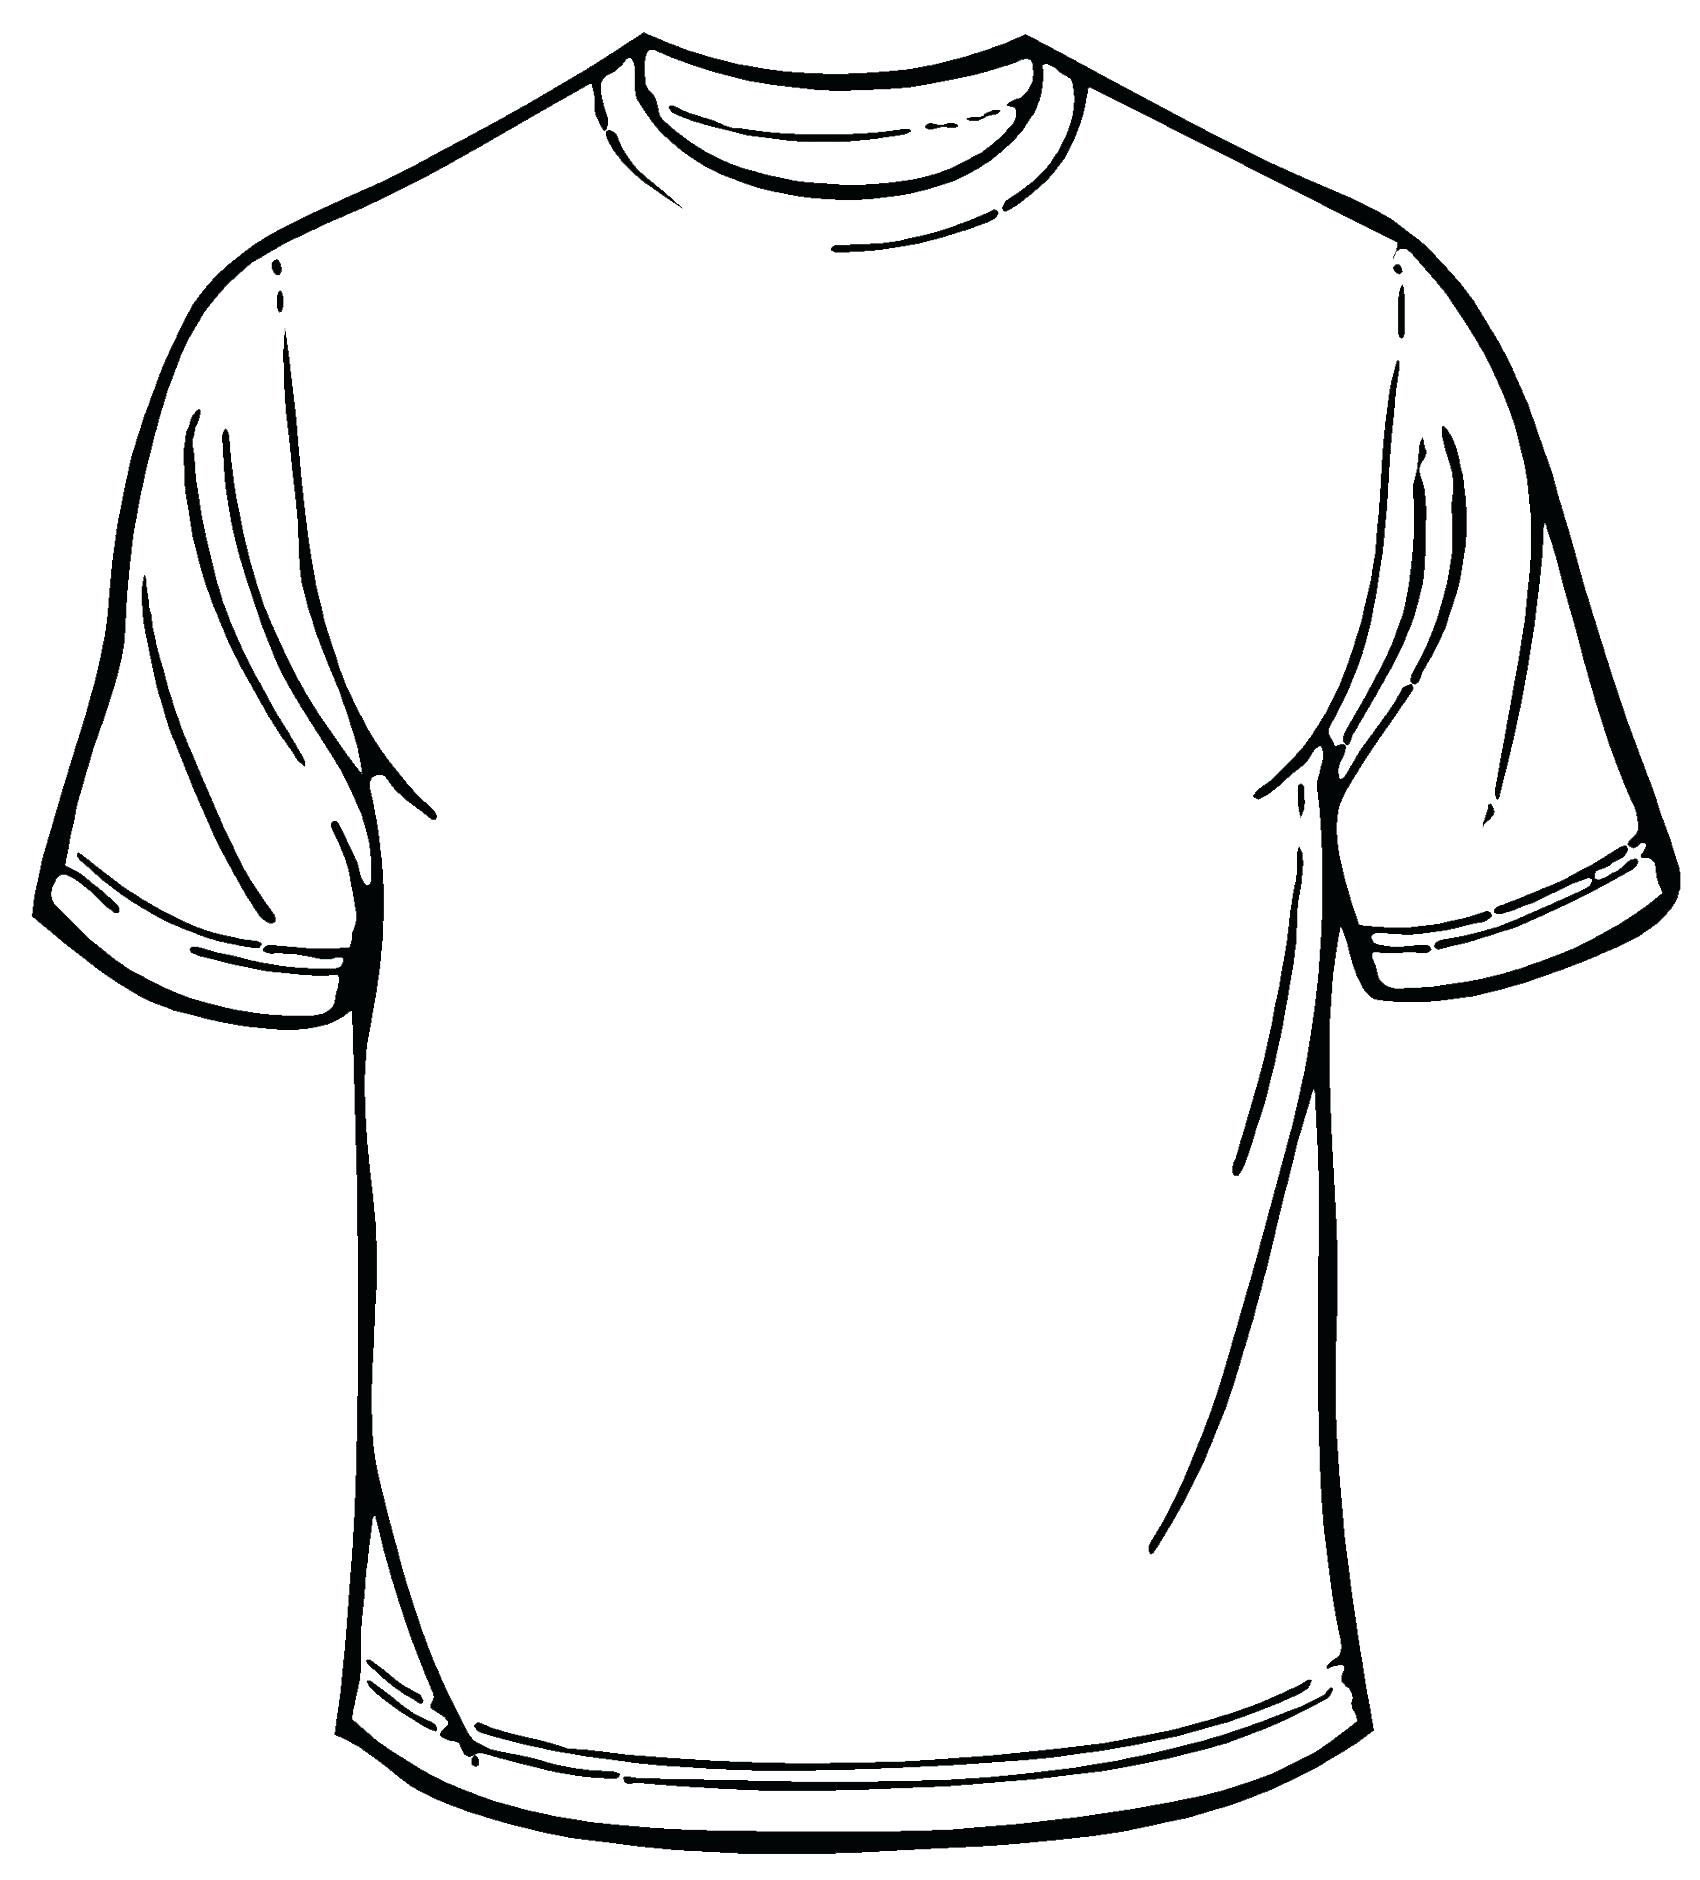 T Shirt Outline Drawing